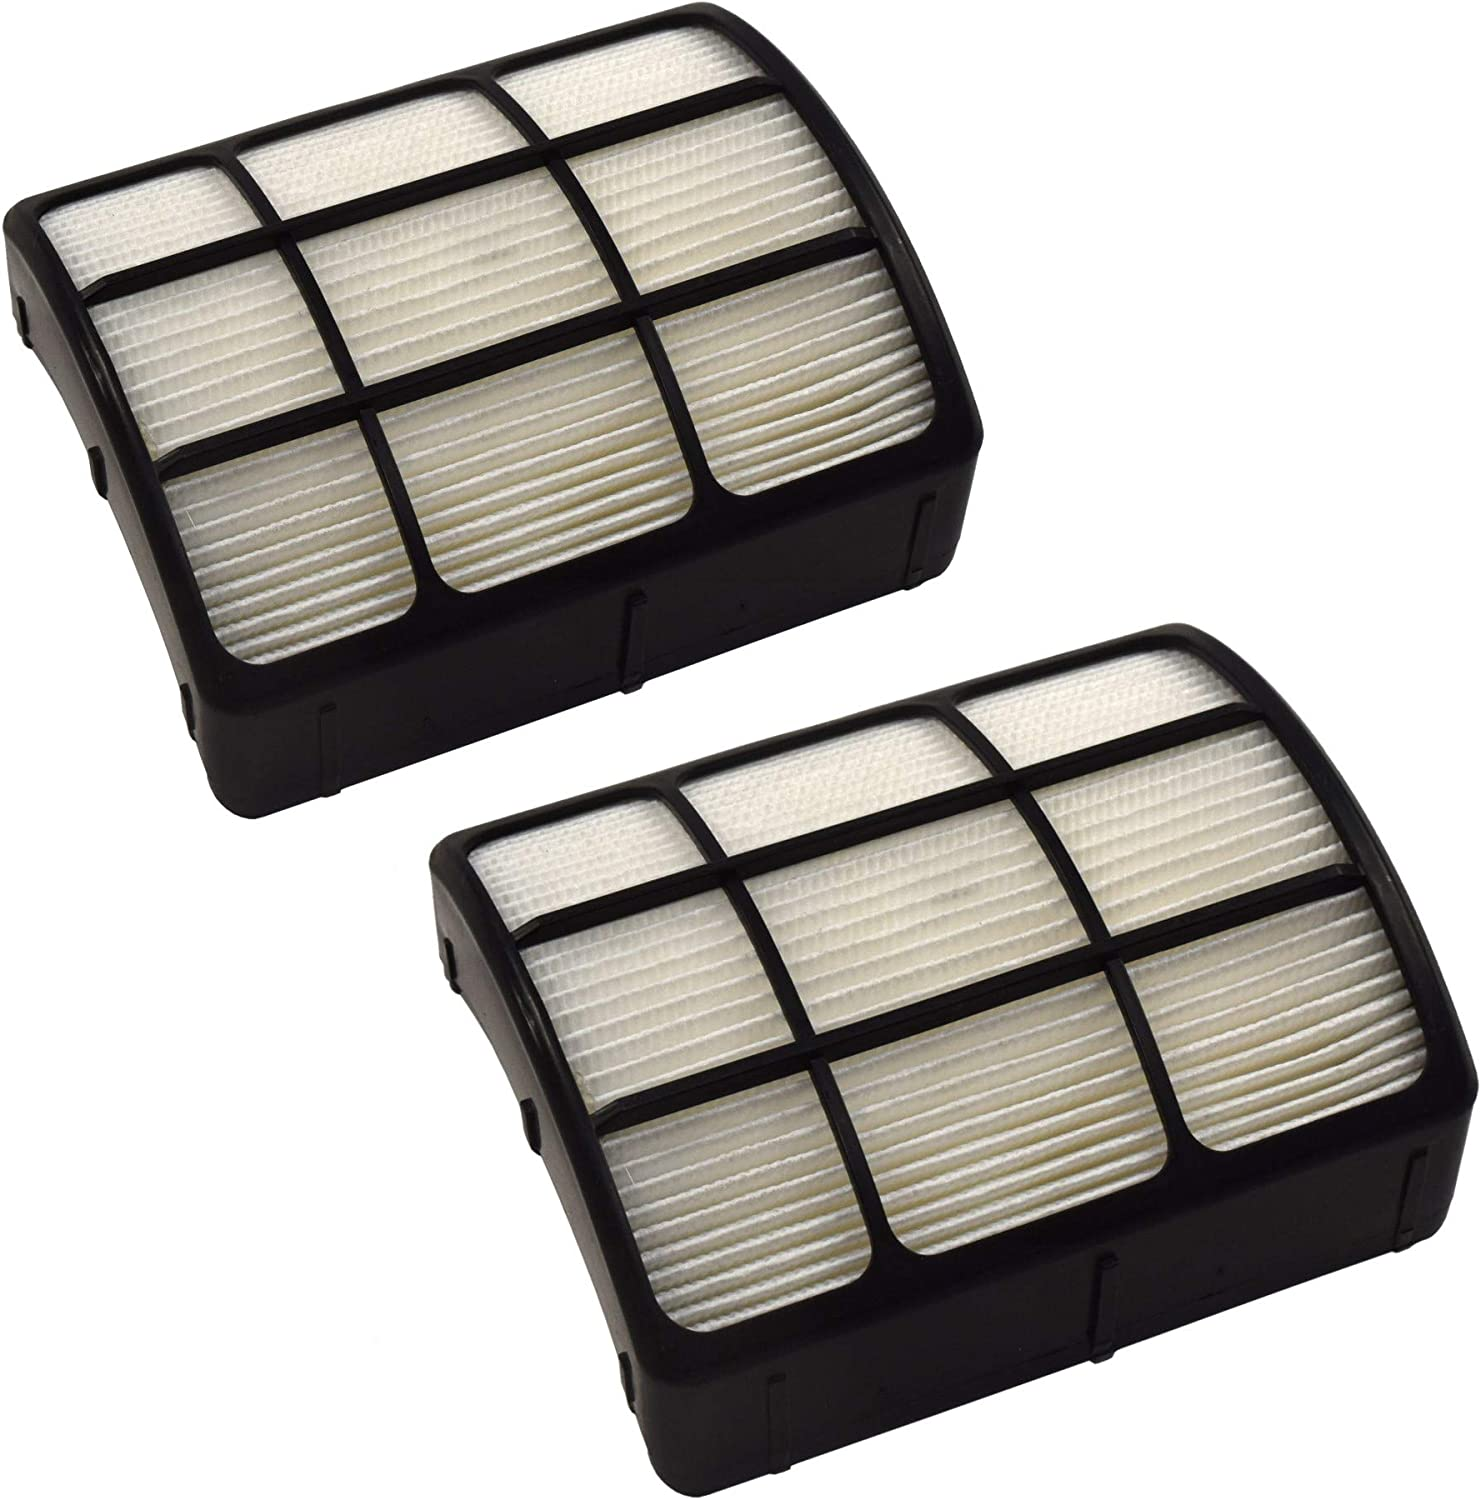 HQRP 2-Pack Exhaust Filter for Dirt Devil F86 440006419 Replacement fits Dirt Devil Lift & Go UD70300 UD70300B UD70170 UD20125 UD20125B UD70163 UD70167 UD70169 Upright Vacuums Plus Coaster